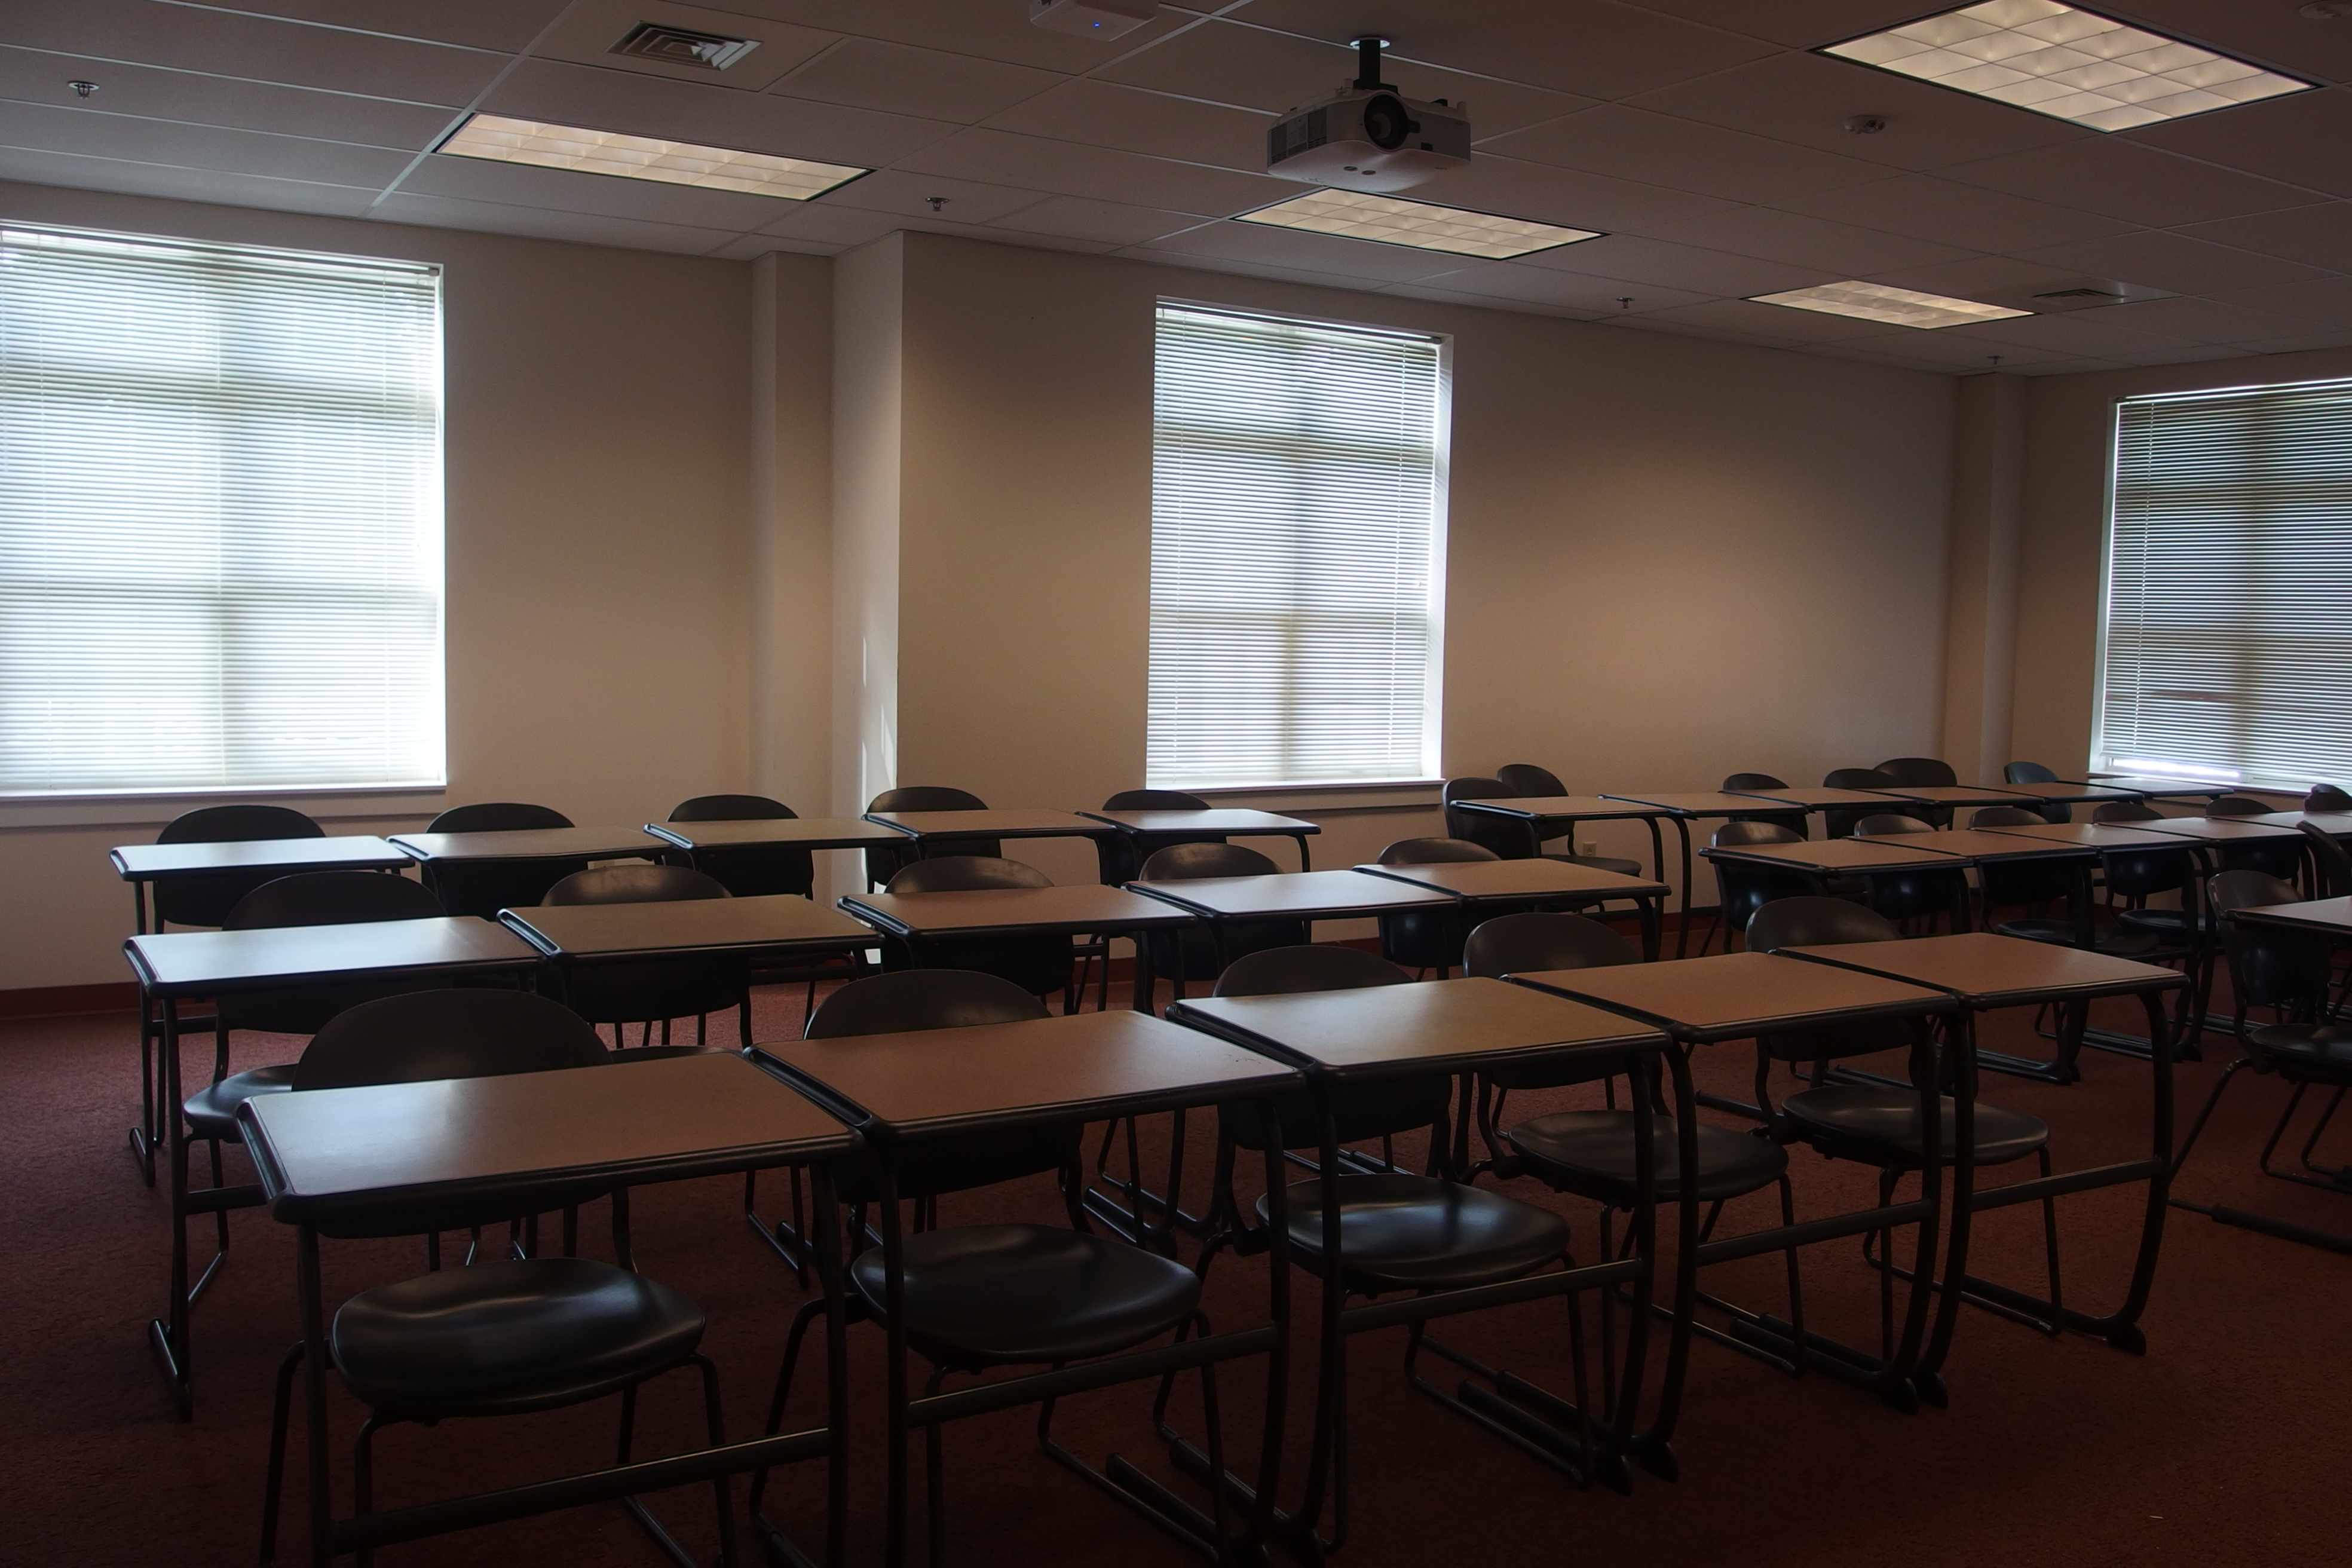 Photo of the classroom taken from the entrance of the room showing the student tables